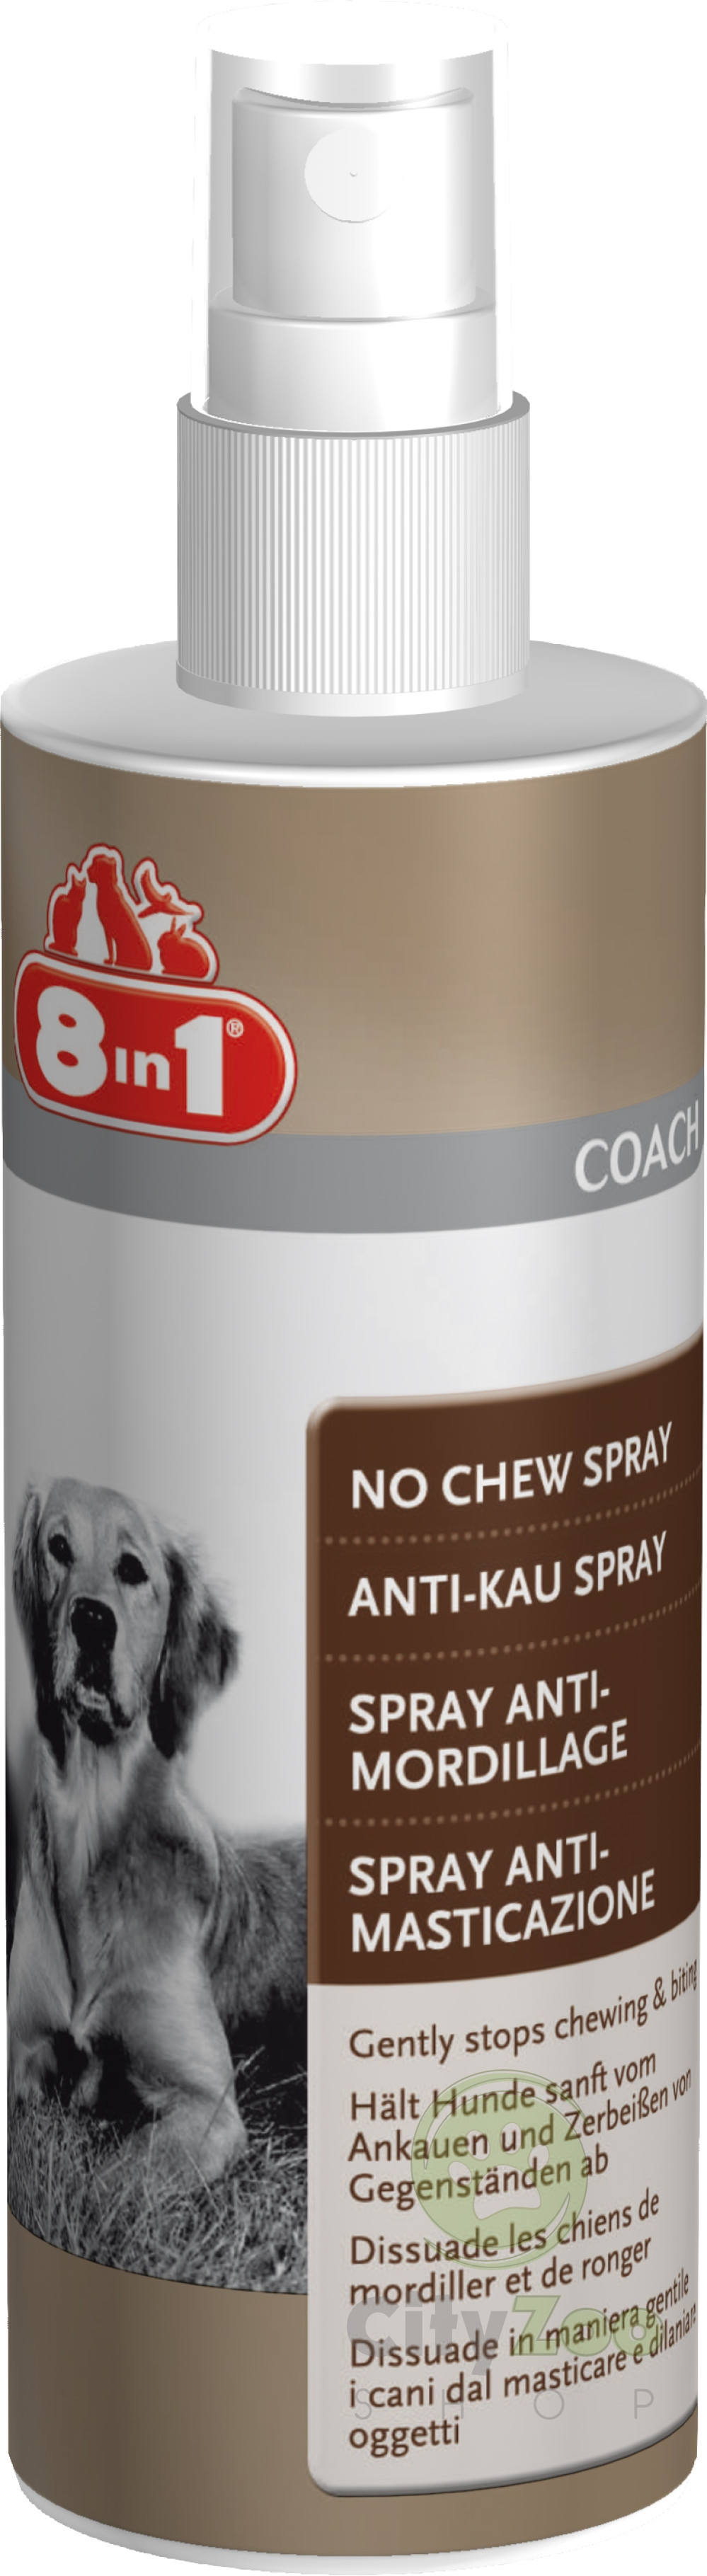 zoo/8in1_No_Chew_Spray